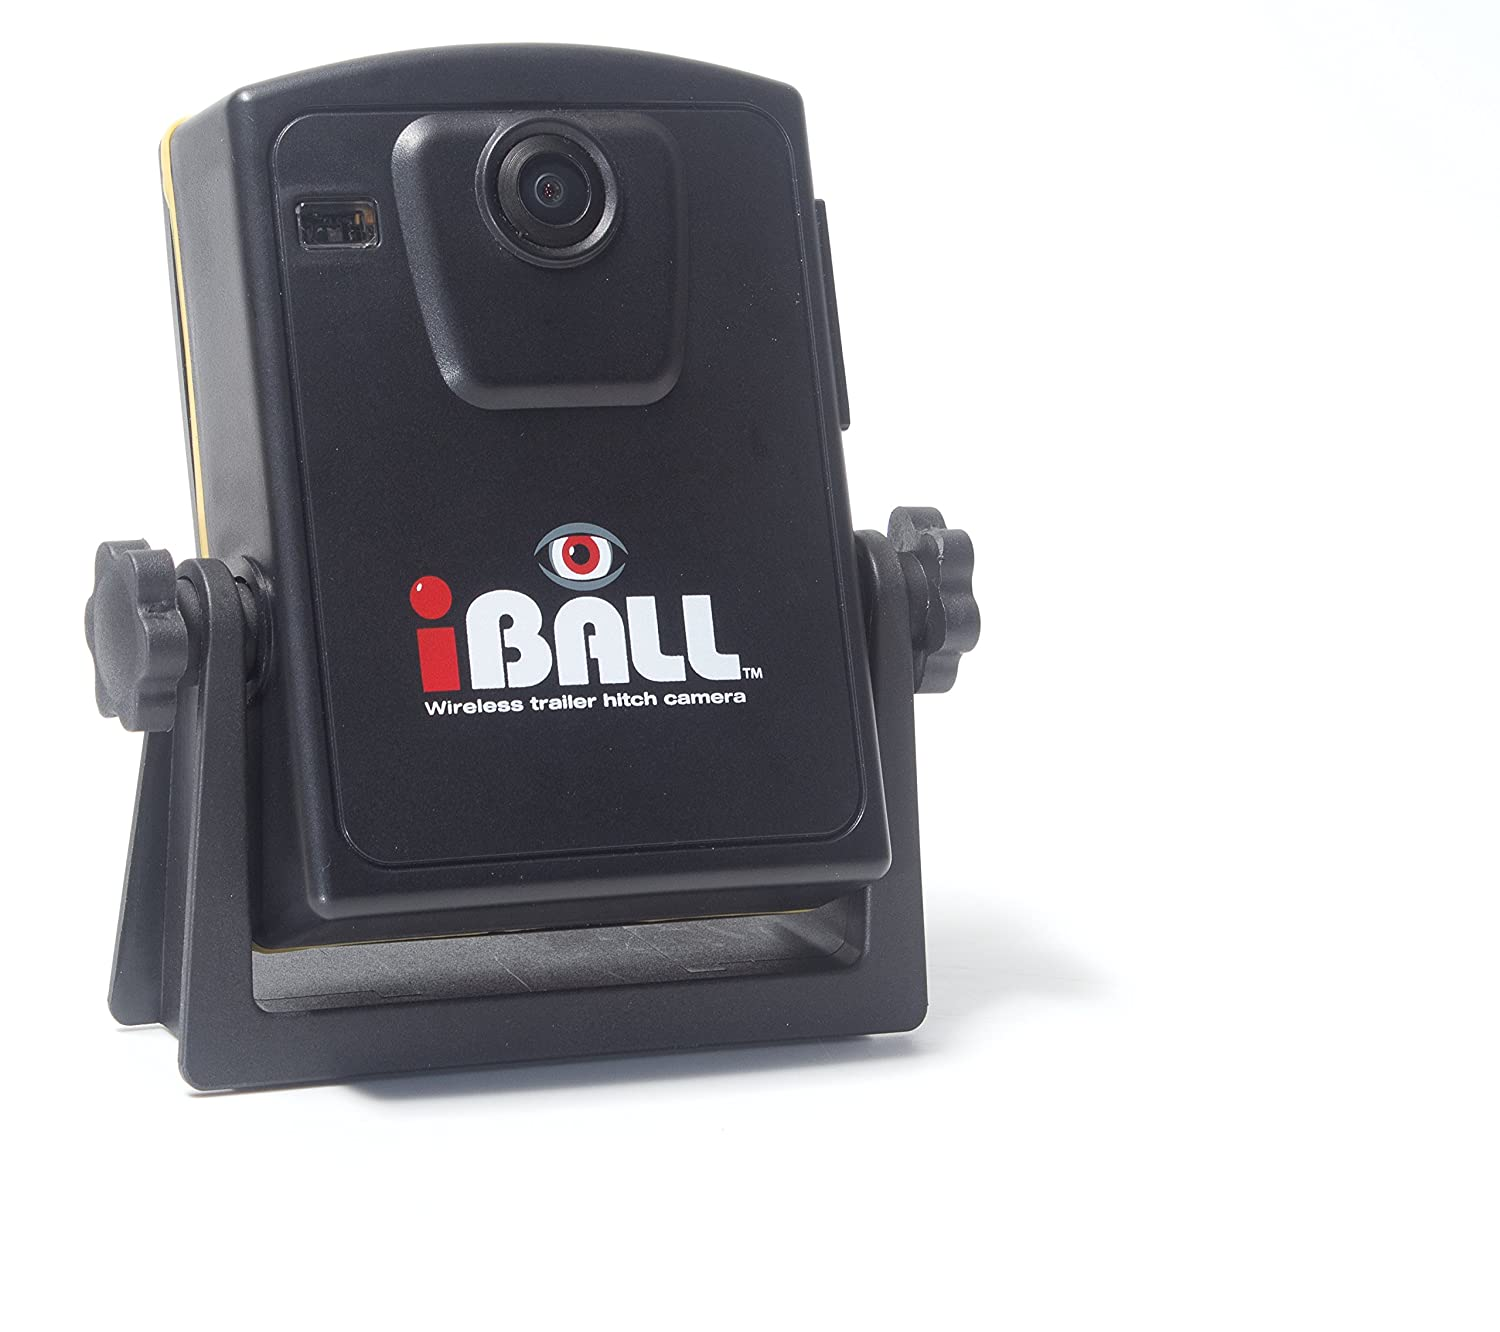 iBall Digital Pro Wireless Magnetic Trailer Hitch Rear View Camera LCD Monitor Fits Any Vehicle Car or Truck